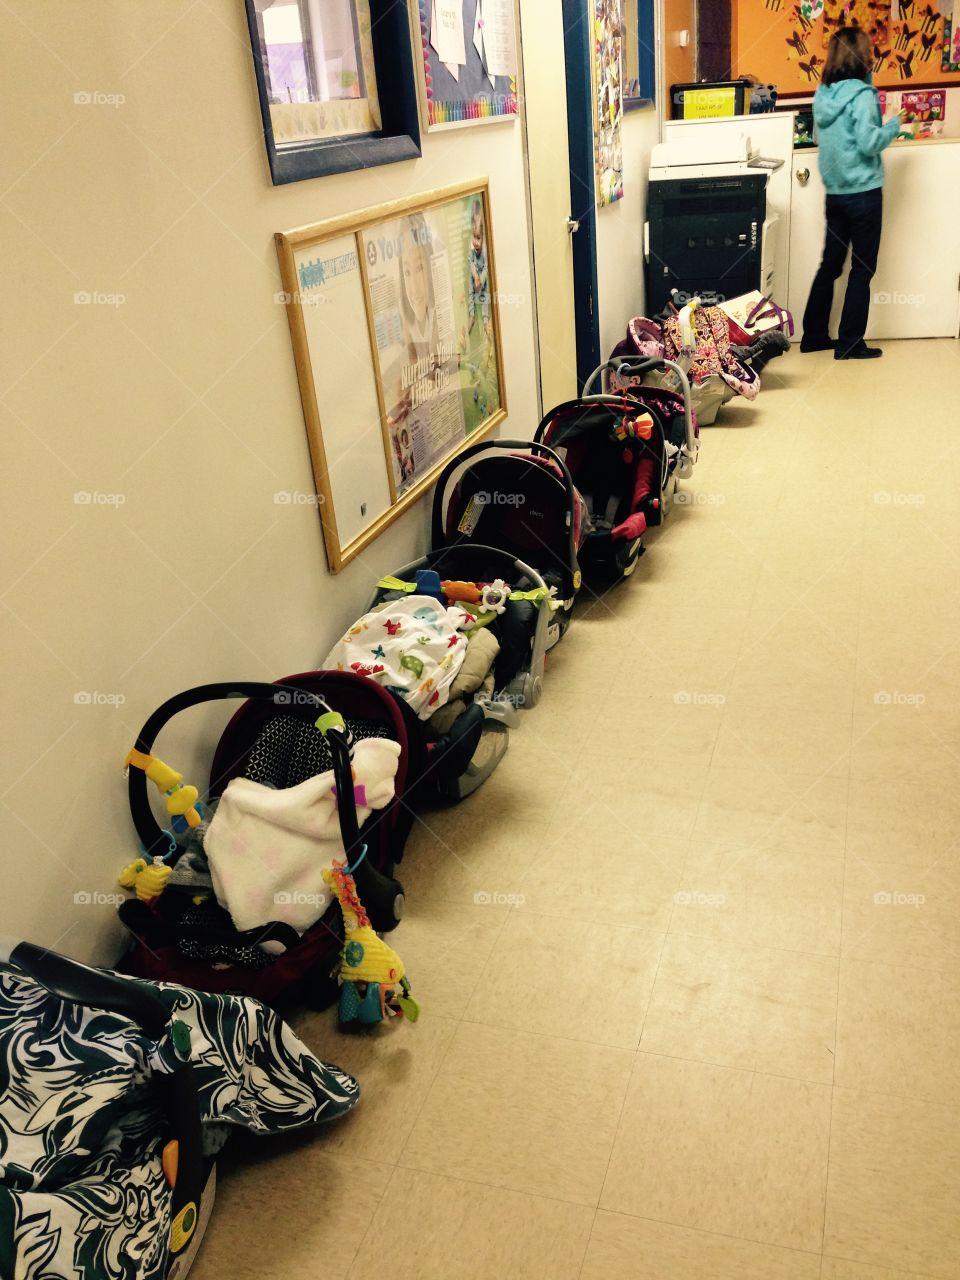 Track Infant Carriers. This daycare scene disturbed me, so I took a picture. This might be part of what is wrong with this world.